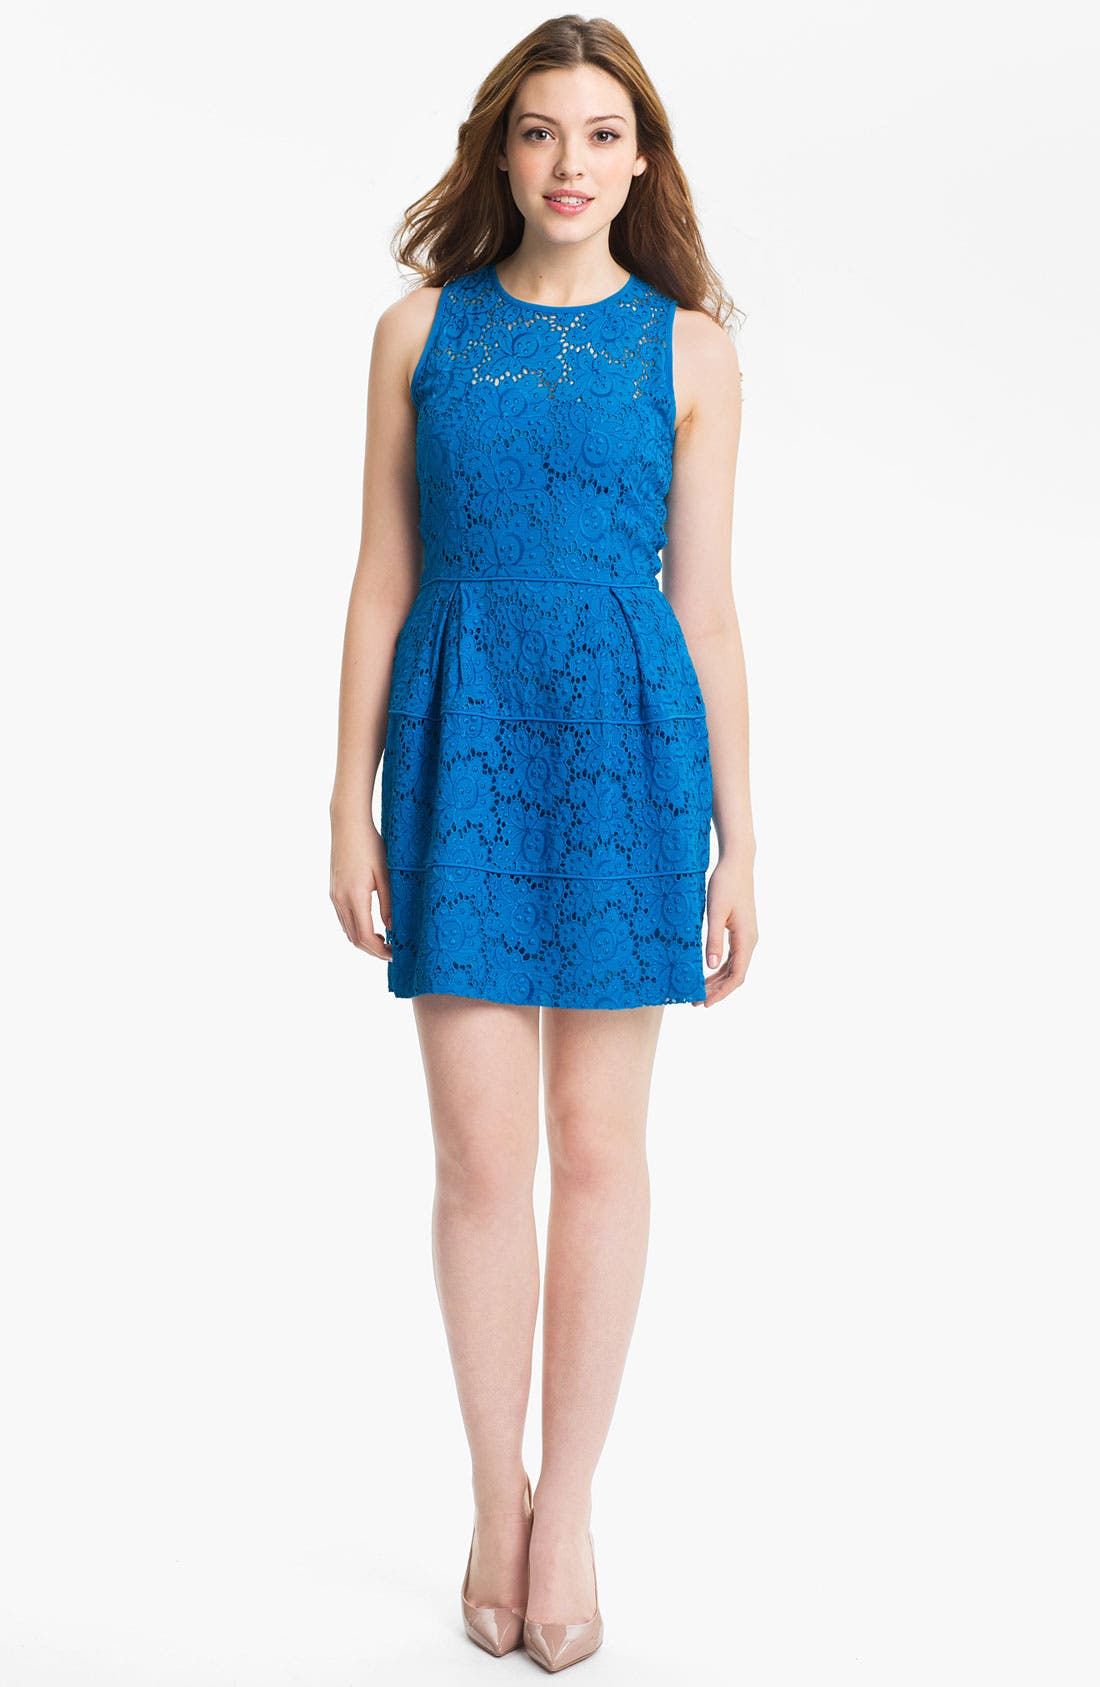 Alternate Image 1 Selected - Nanette Lepore 'Treasure' Lace Fit & Flare Dress